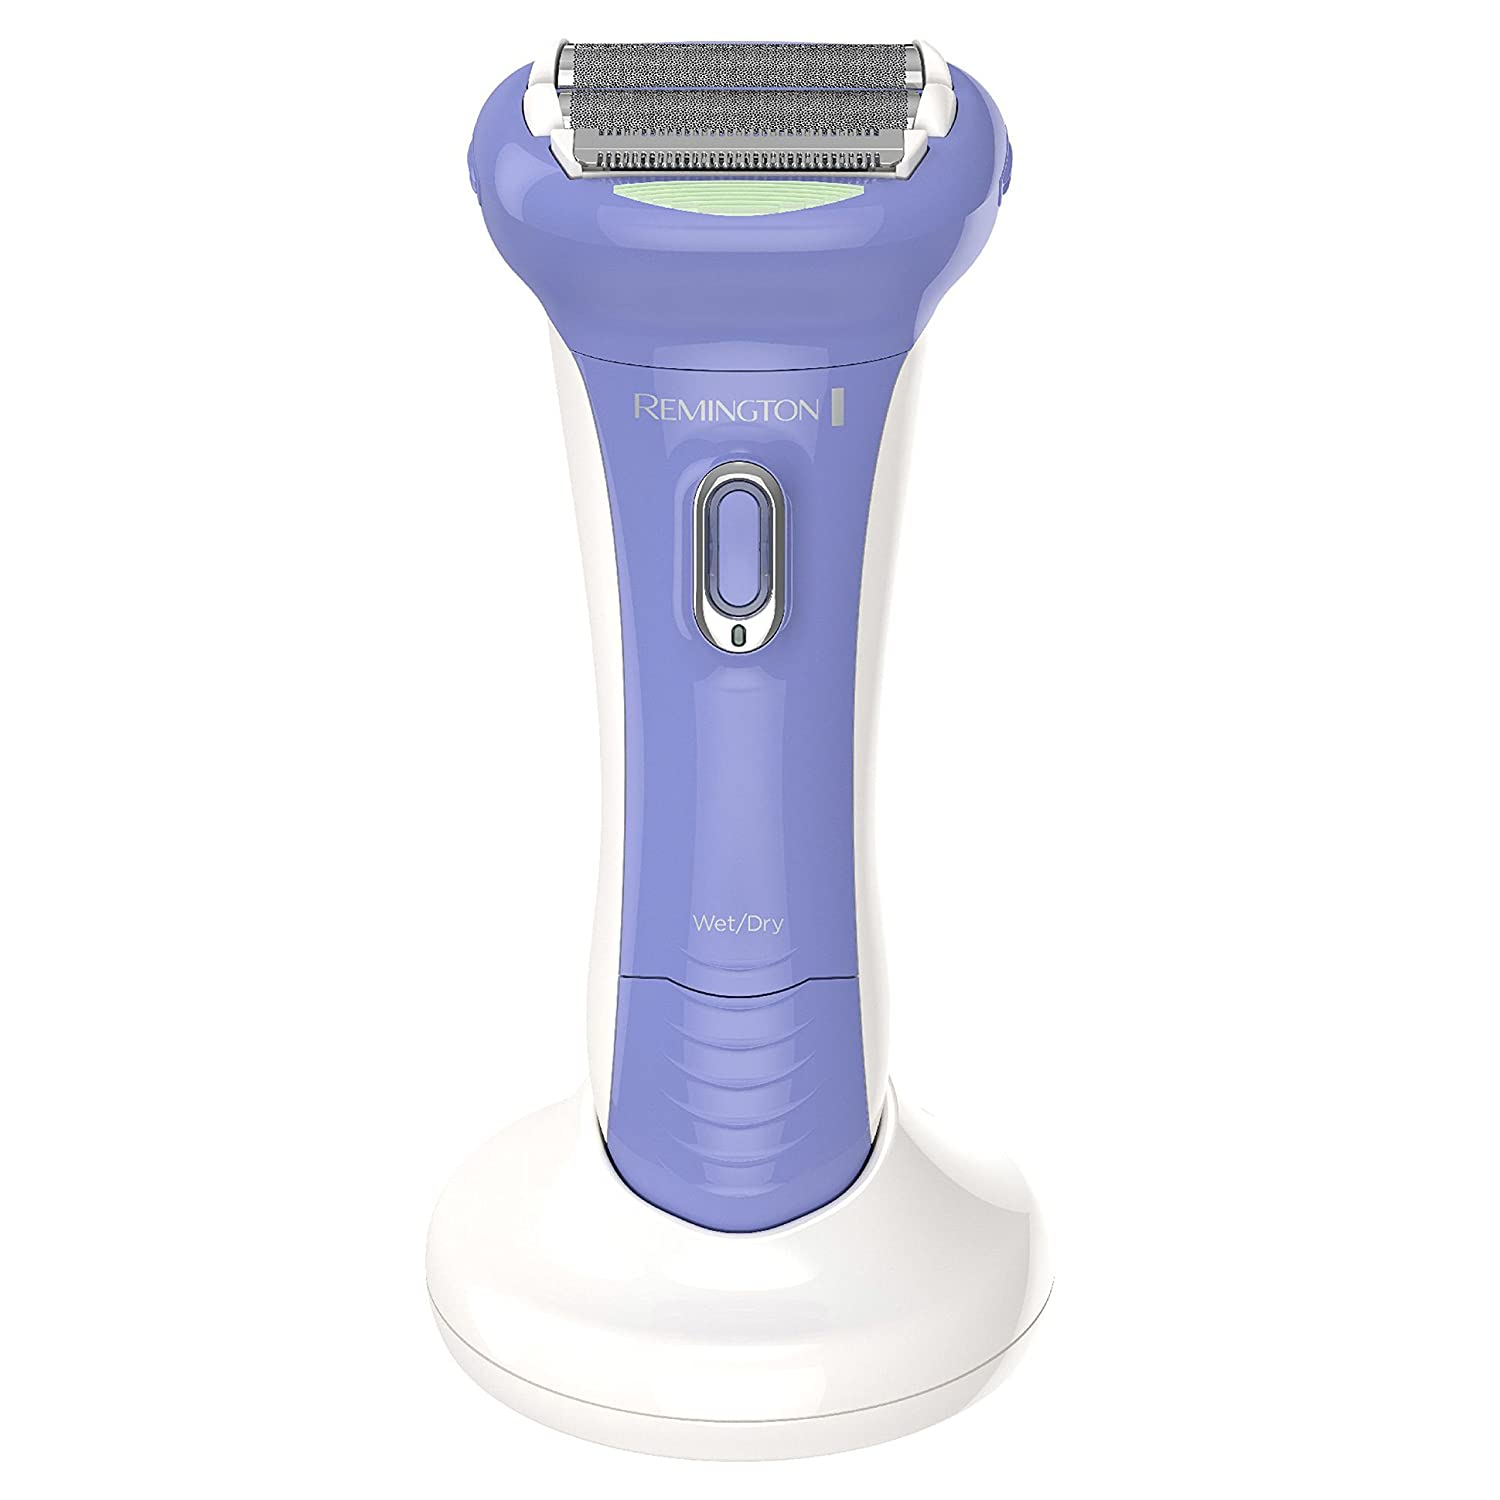 Remington WDF5030 Wet & Dry Women's Rechargeable Electric Razor, Foil Shaver, Electric Razor, Shaver Spectrum Brands Inc.